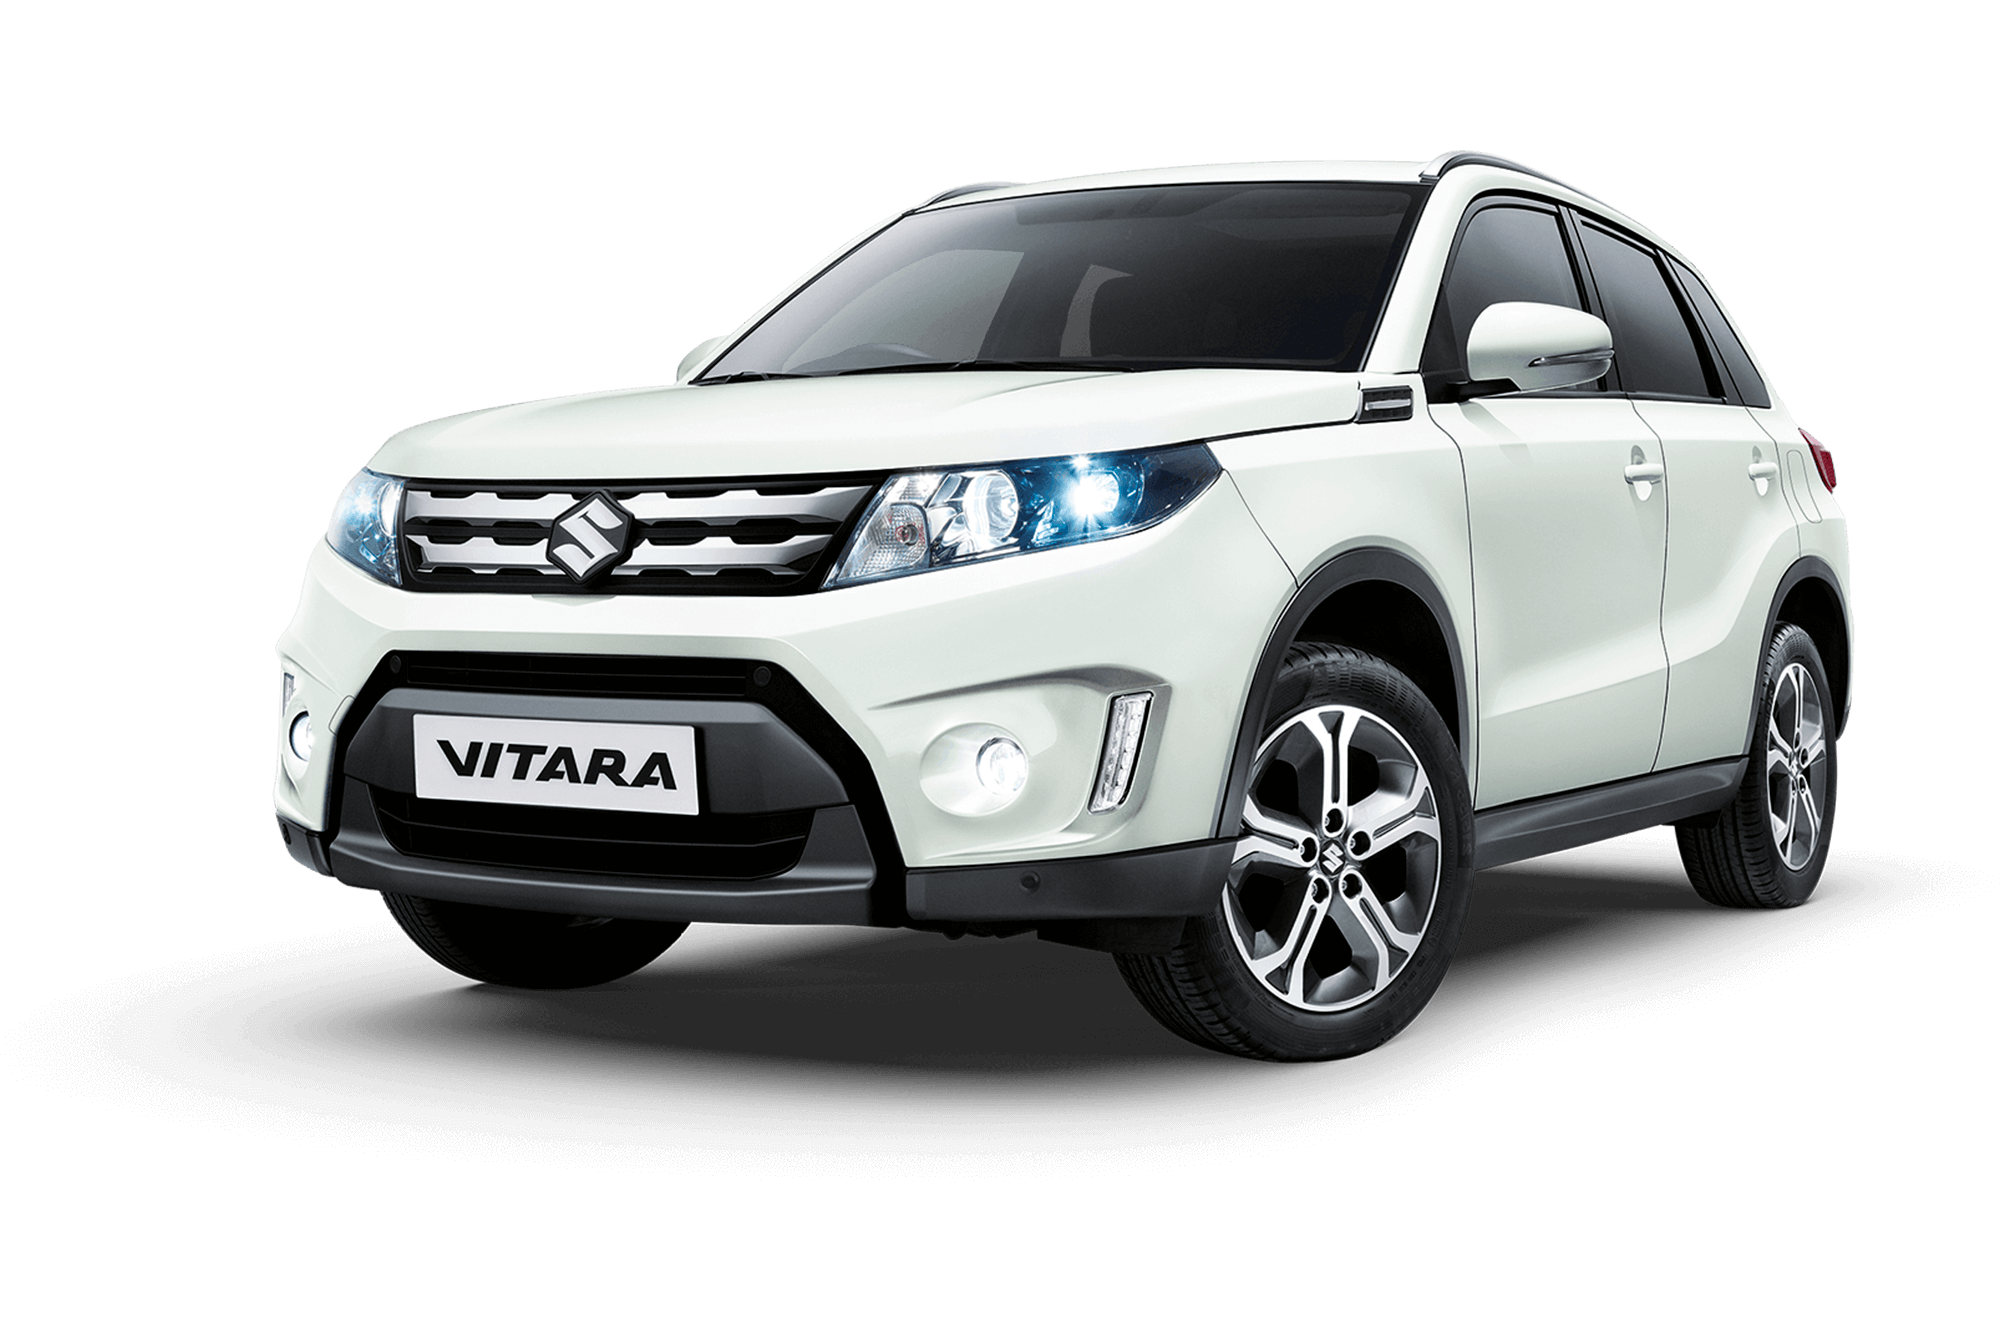 the suzuki vitara suzuki cars uk. Black Bedroom Furniture Sets. Home Design Ideas